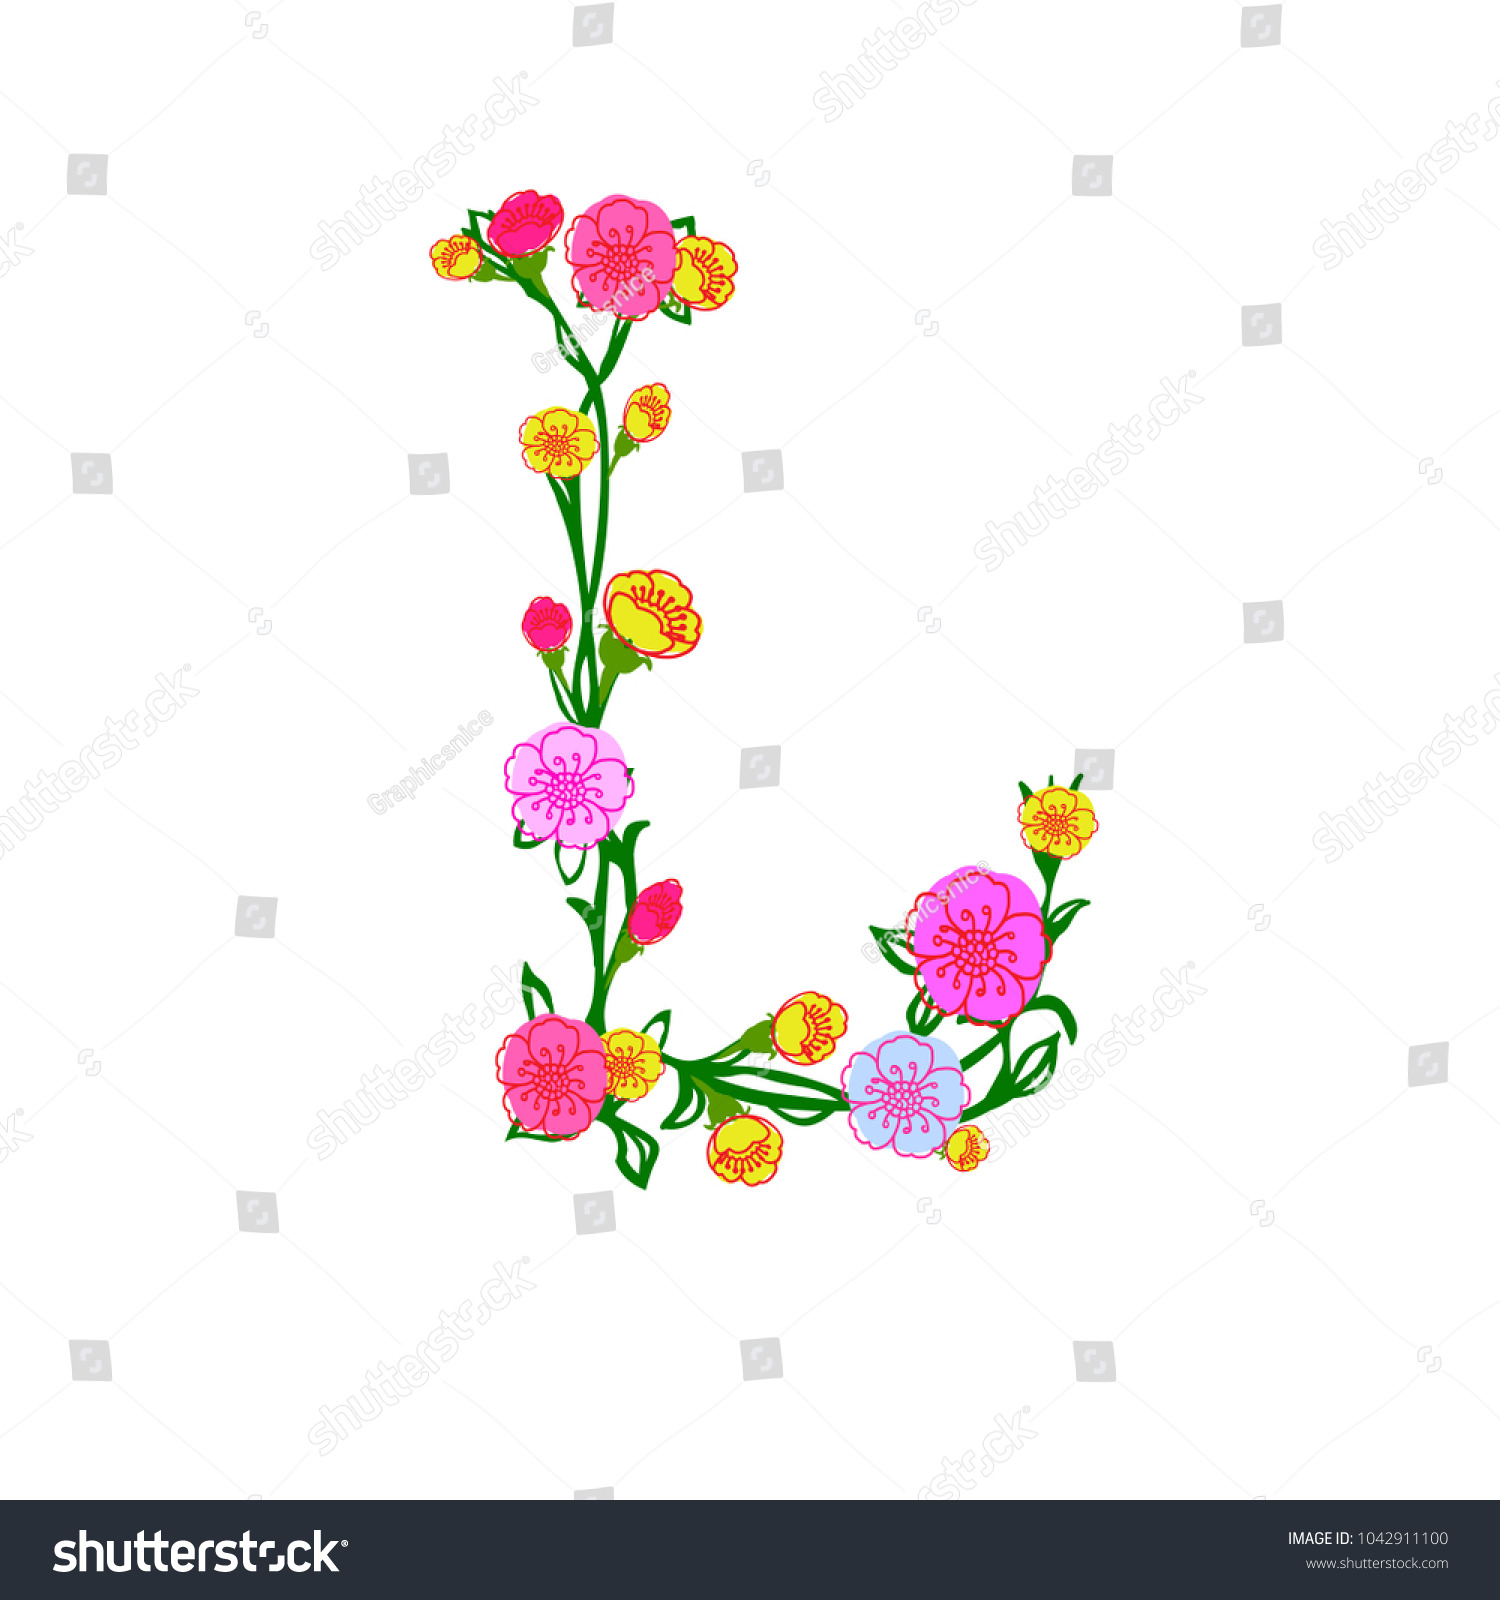 Royalty Free Stock Illustration Of Cute Colorful Floral Alphabet